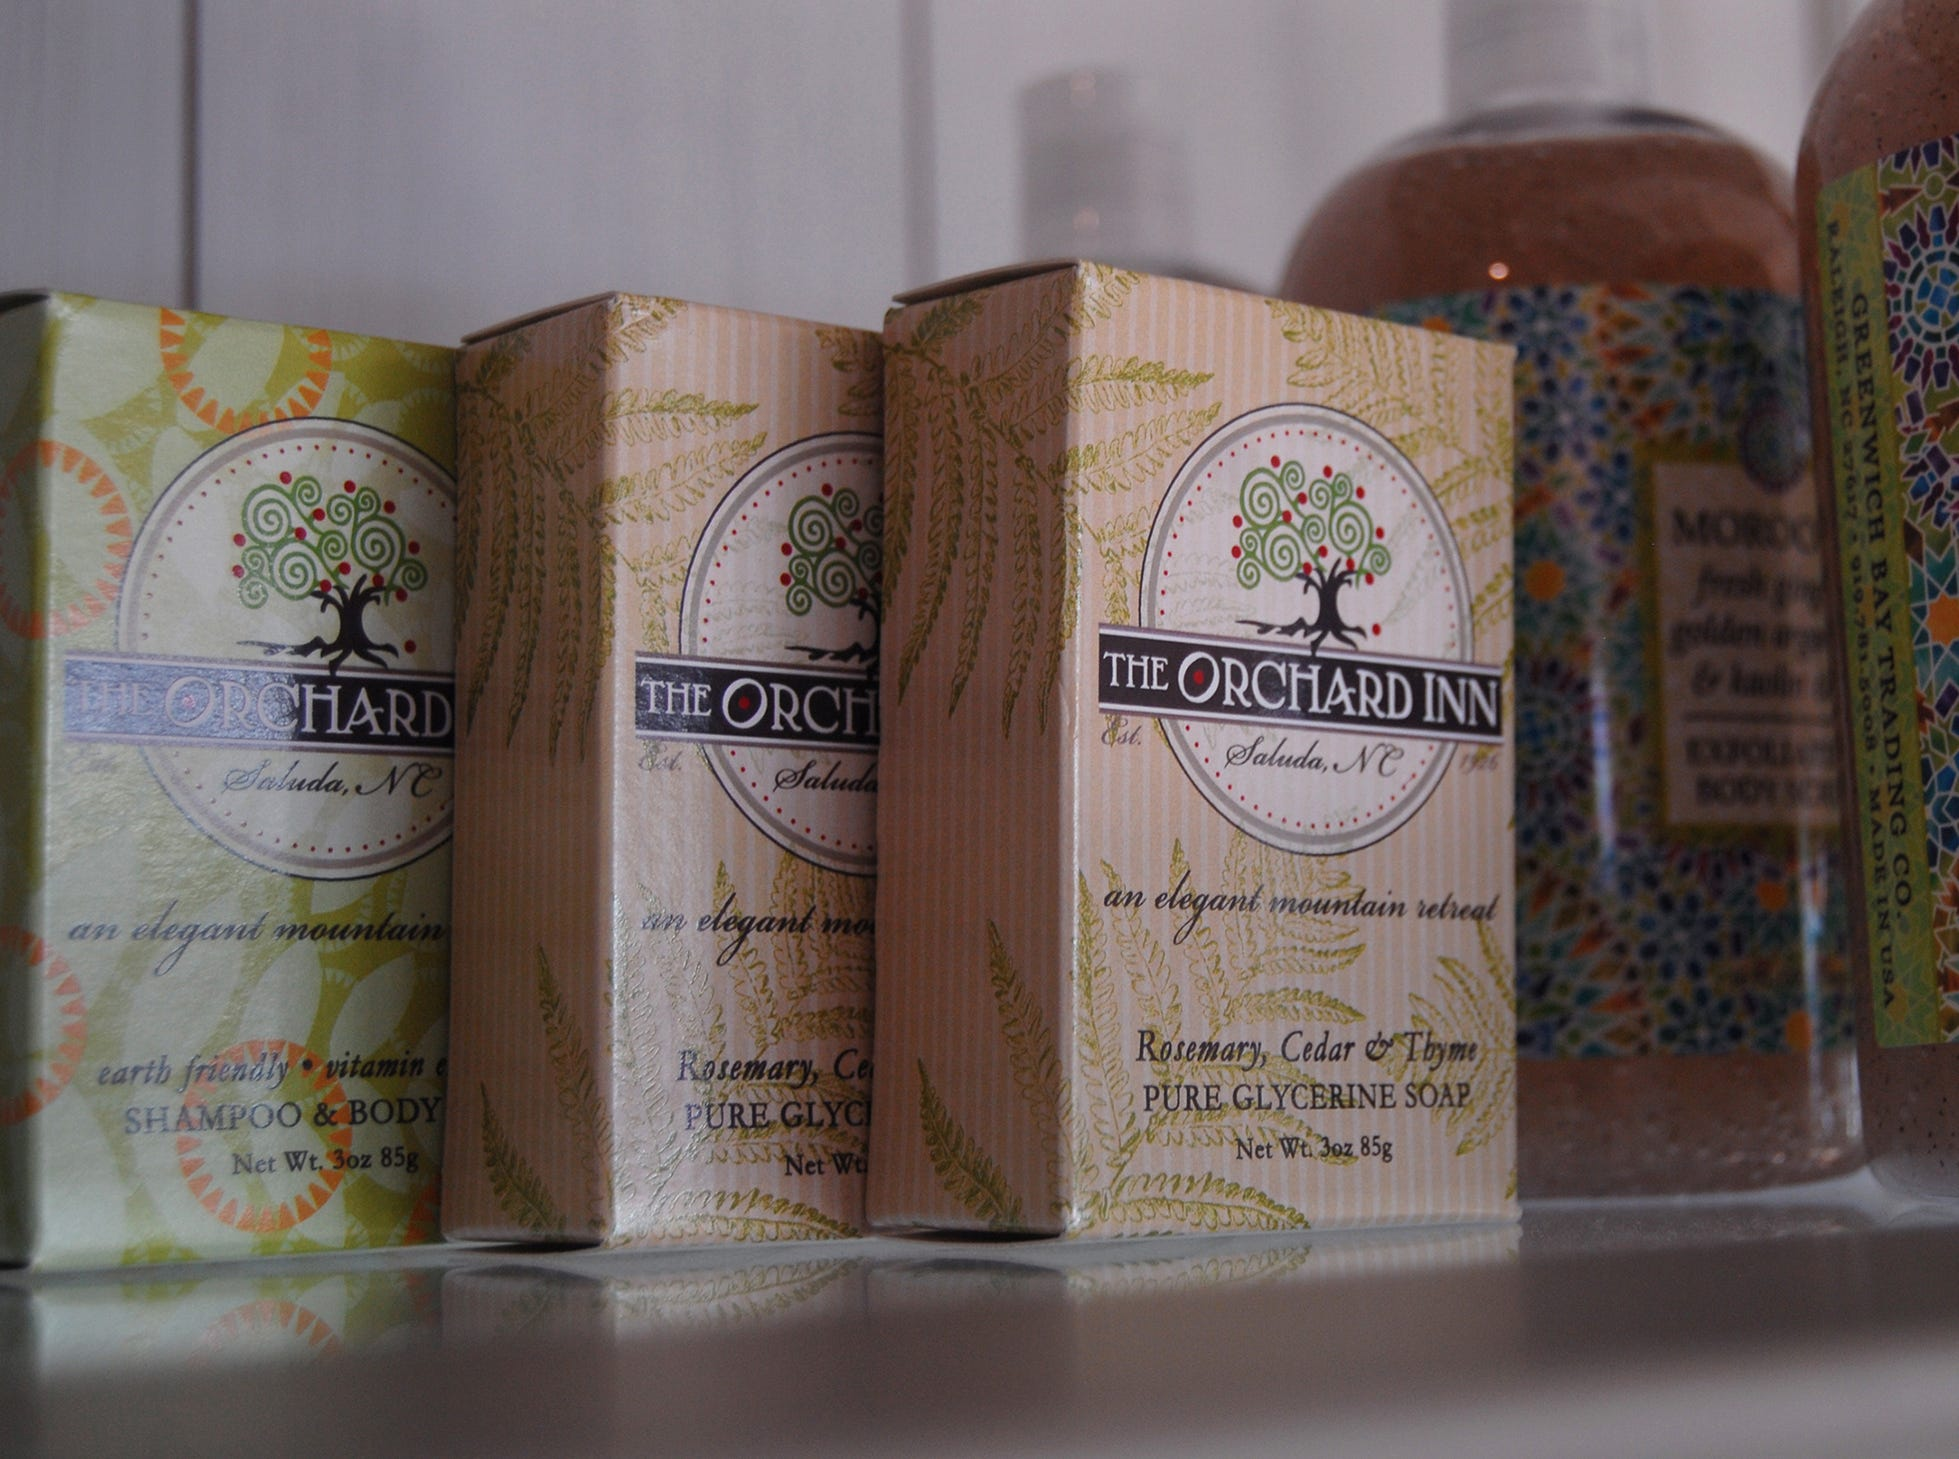 The Orchard Inn also has a line of bath products, used at its spa, made in North Carolina from all natural ingredients.